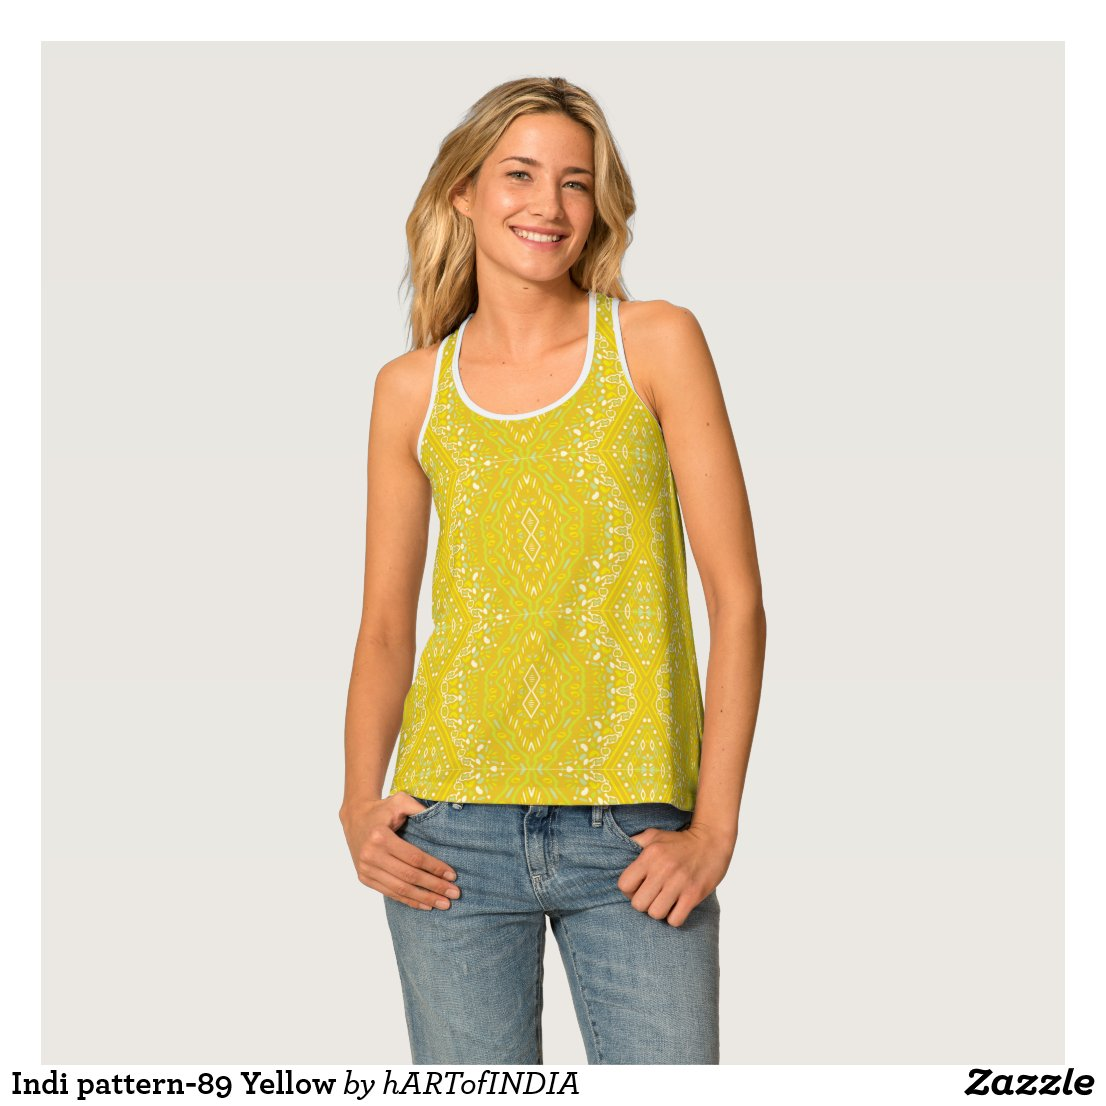 Indi pattern-89 Yellow Tank Top